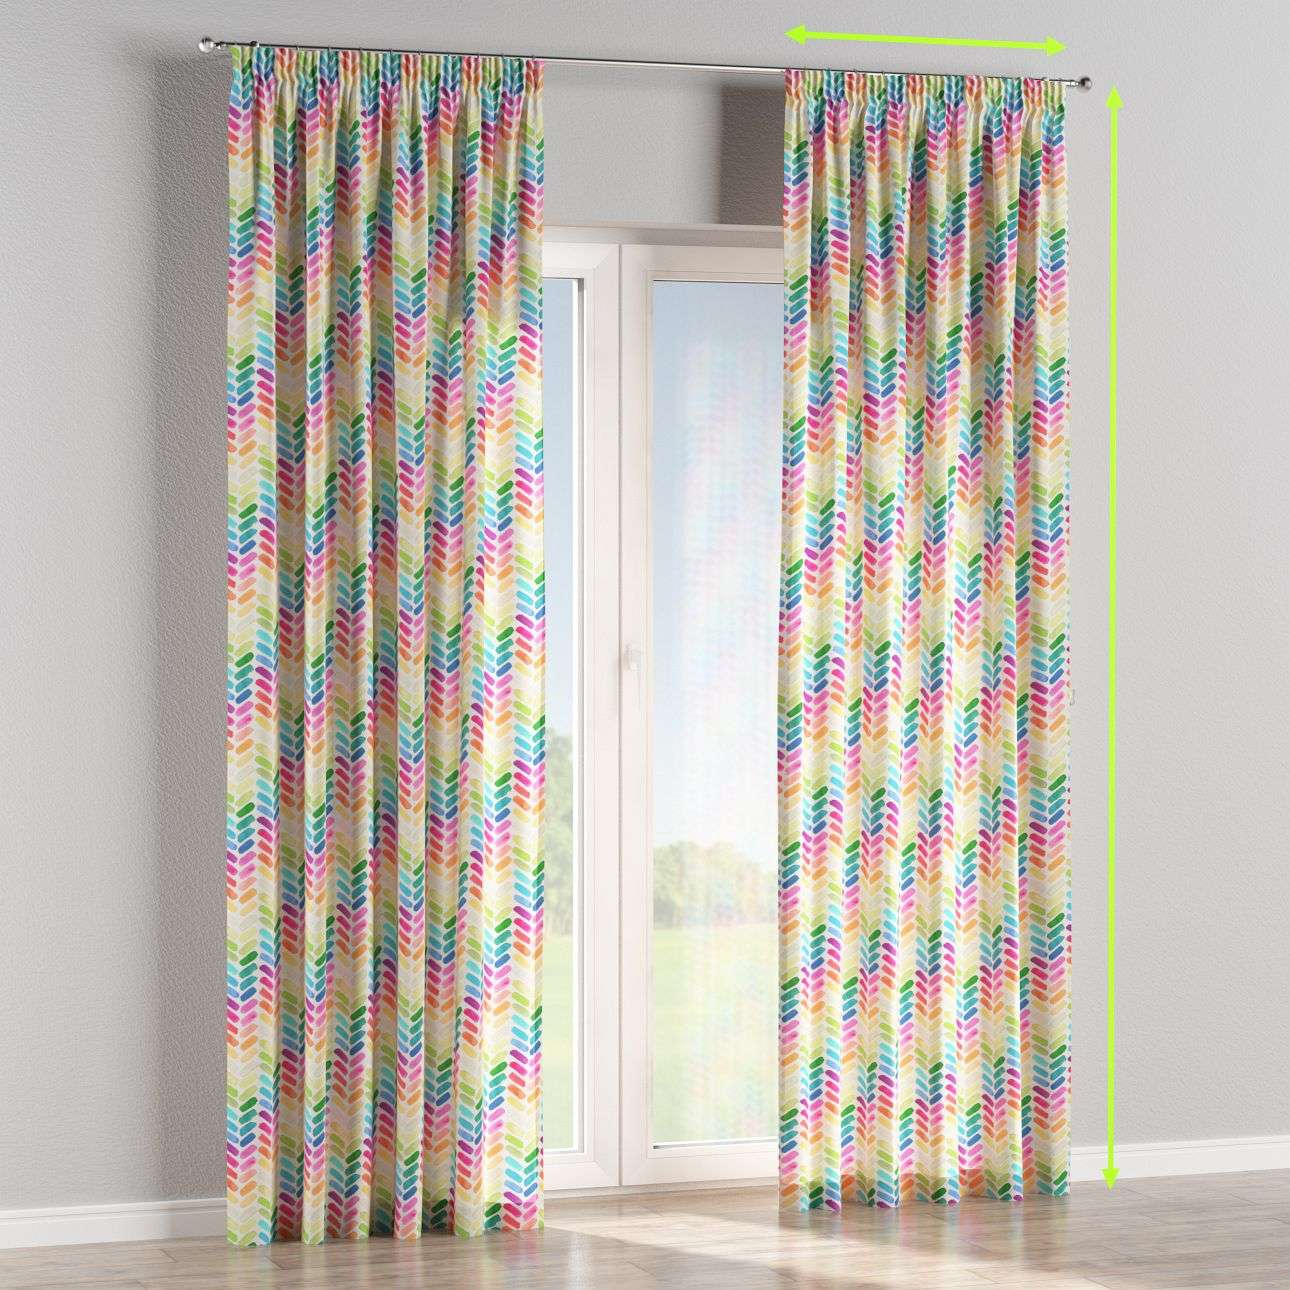 Pencil pleat lined curtains in collection New Art, fabric: 140-25